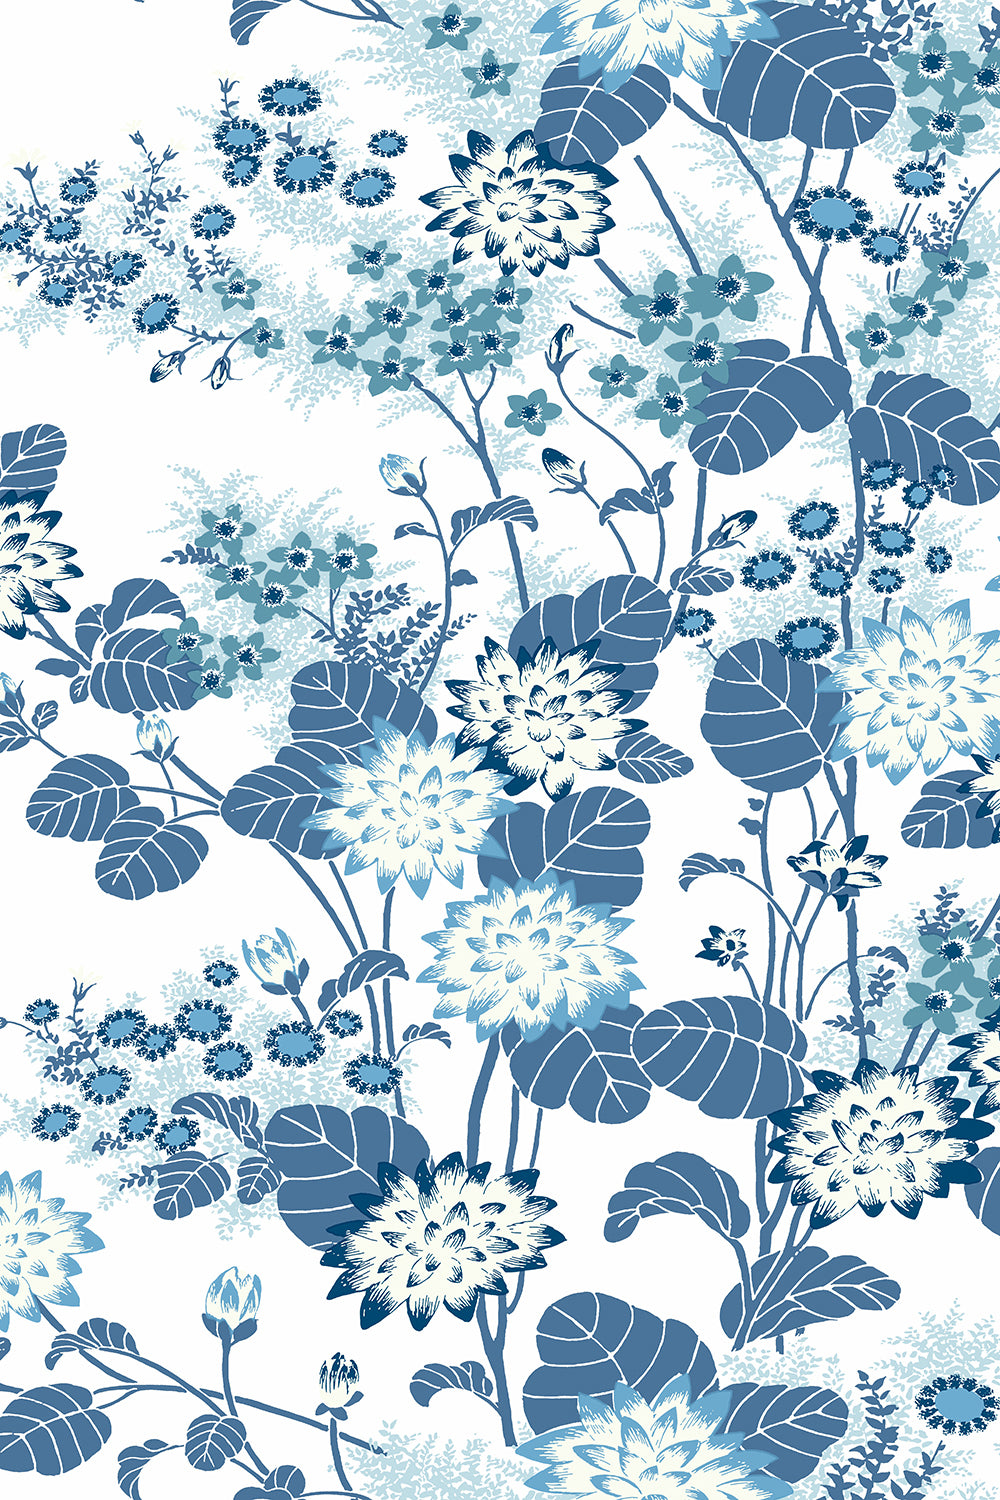 Chinese Floral Wallpaper Blue Florence Broadhurst